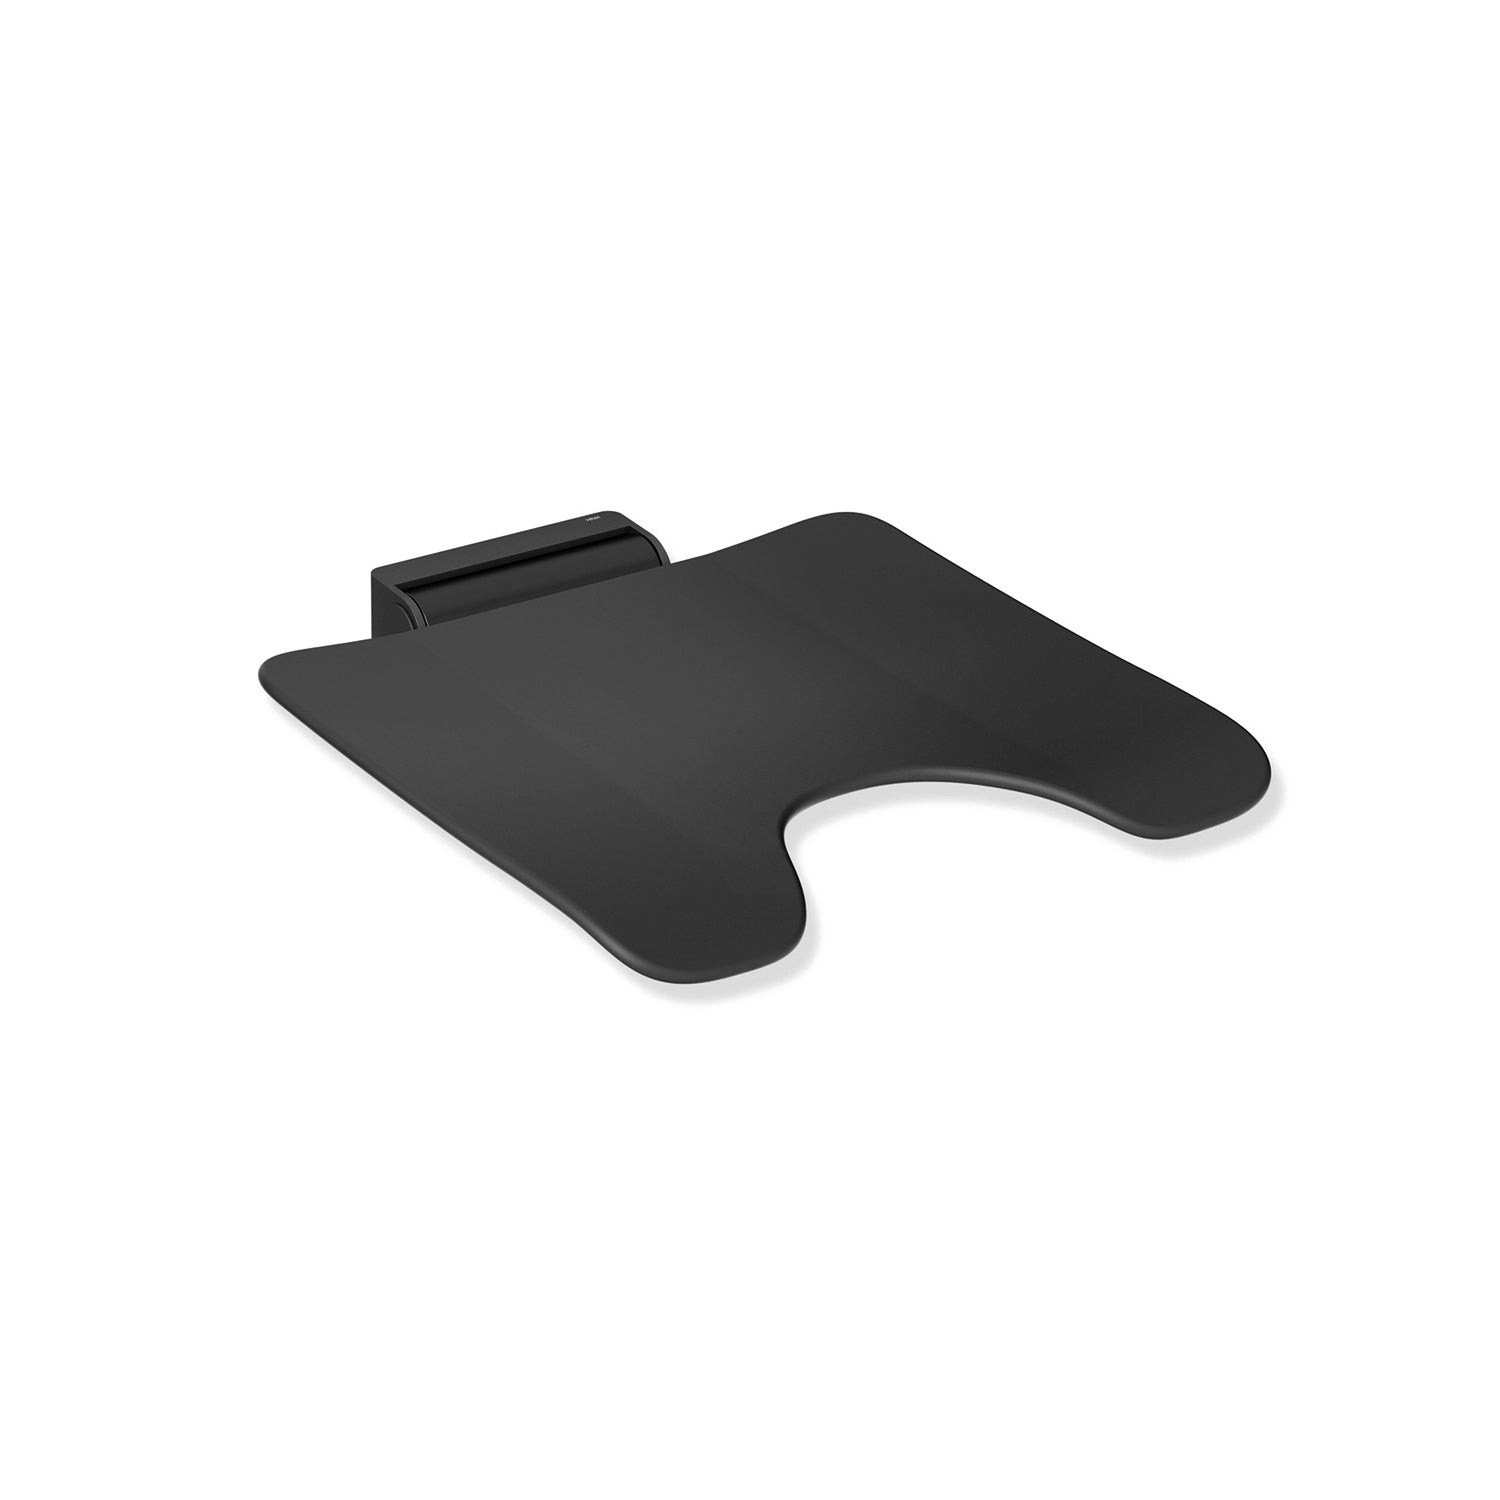 Freestyle Removable Shower Seat with a cut-out in a matt black seat and matt black bracket on a white background